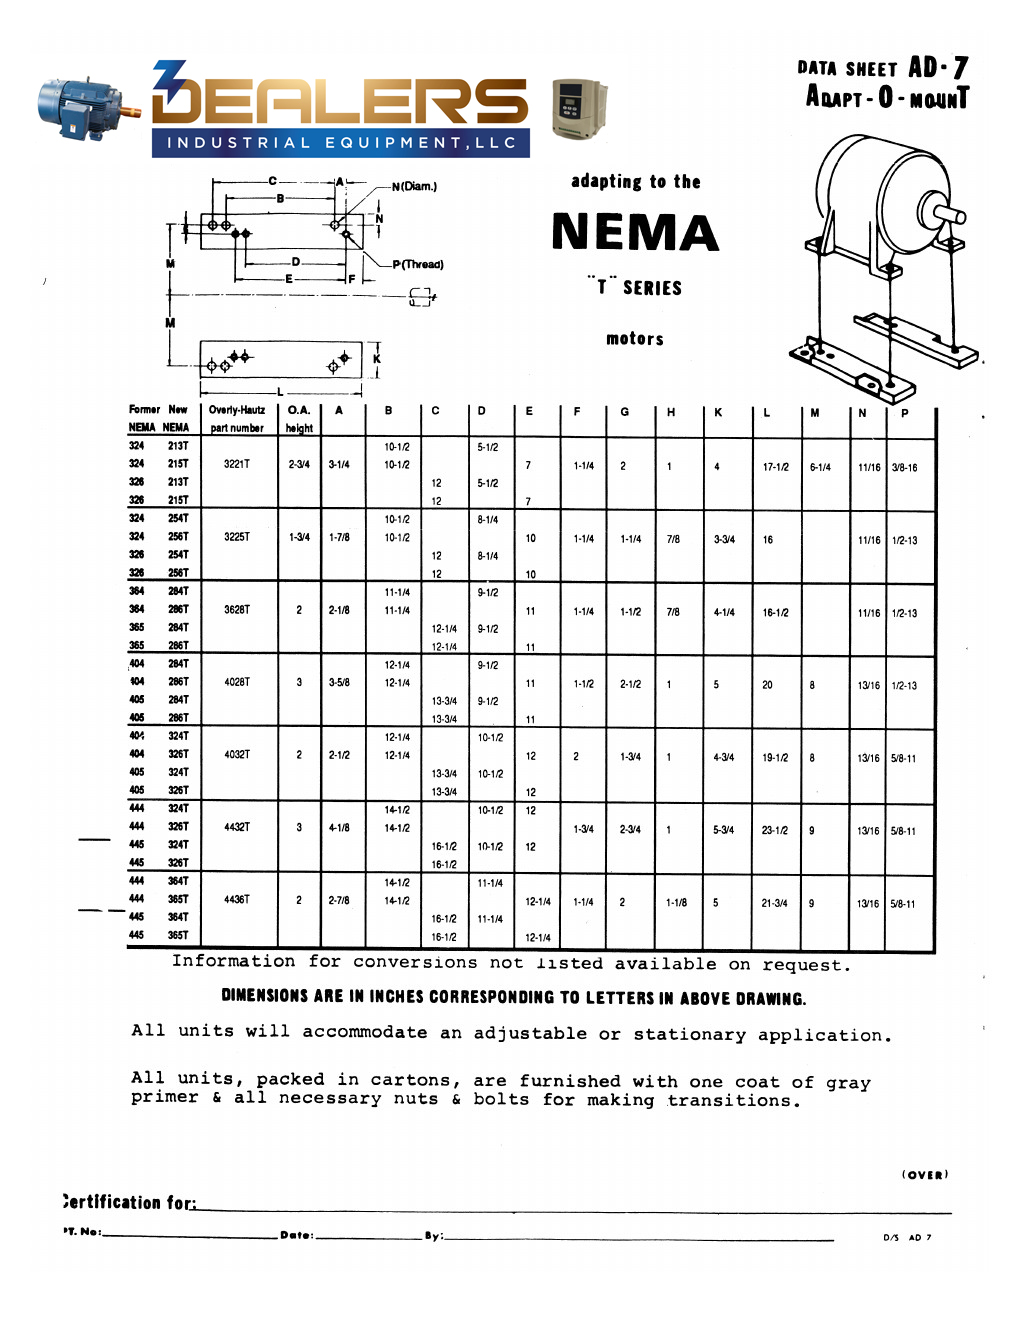 original frame to t frame former nema frame sizes 324 445